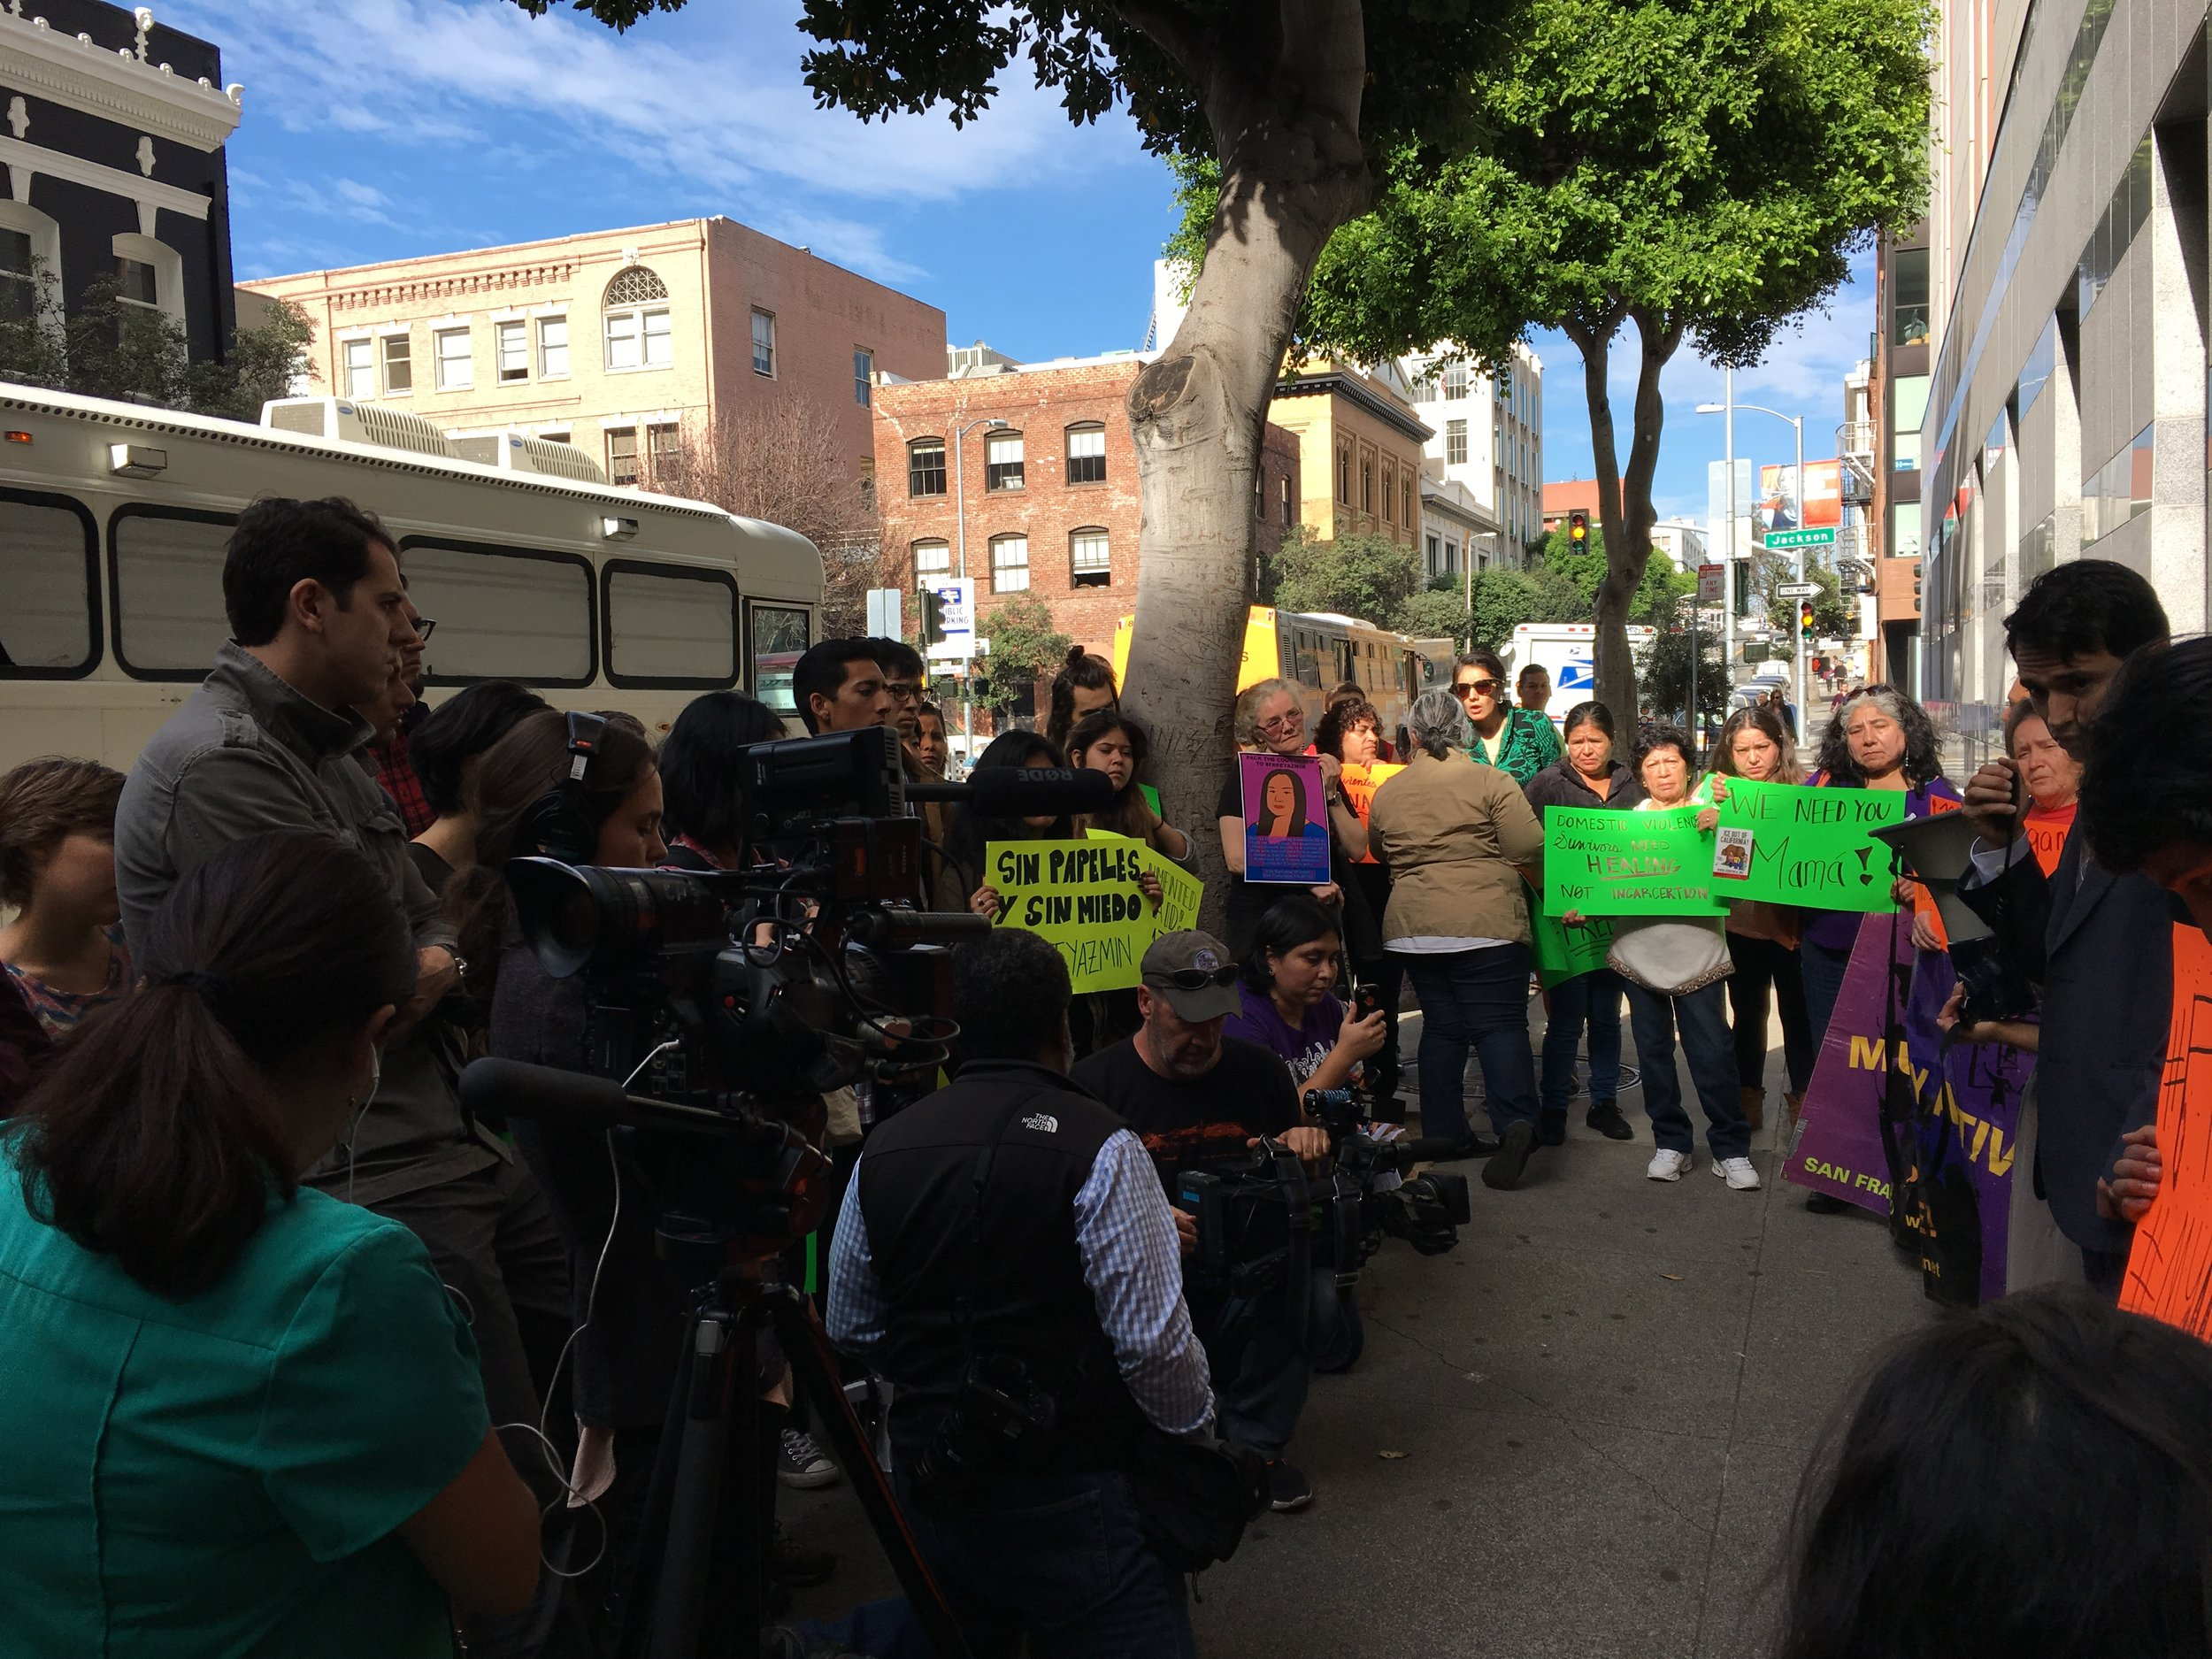 Previous rally for Yazmin (San Francisco, Nov. 10, 2016)